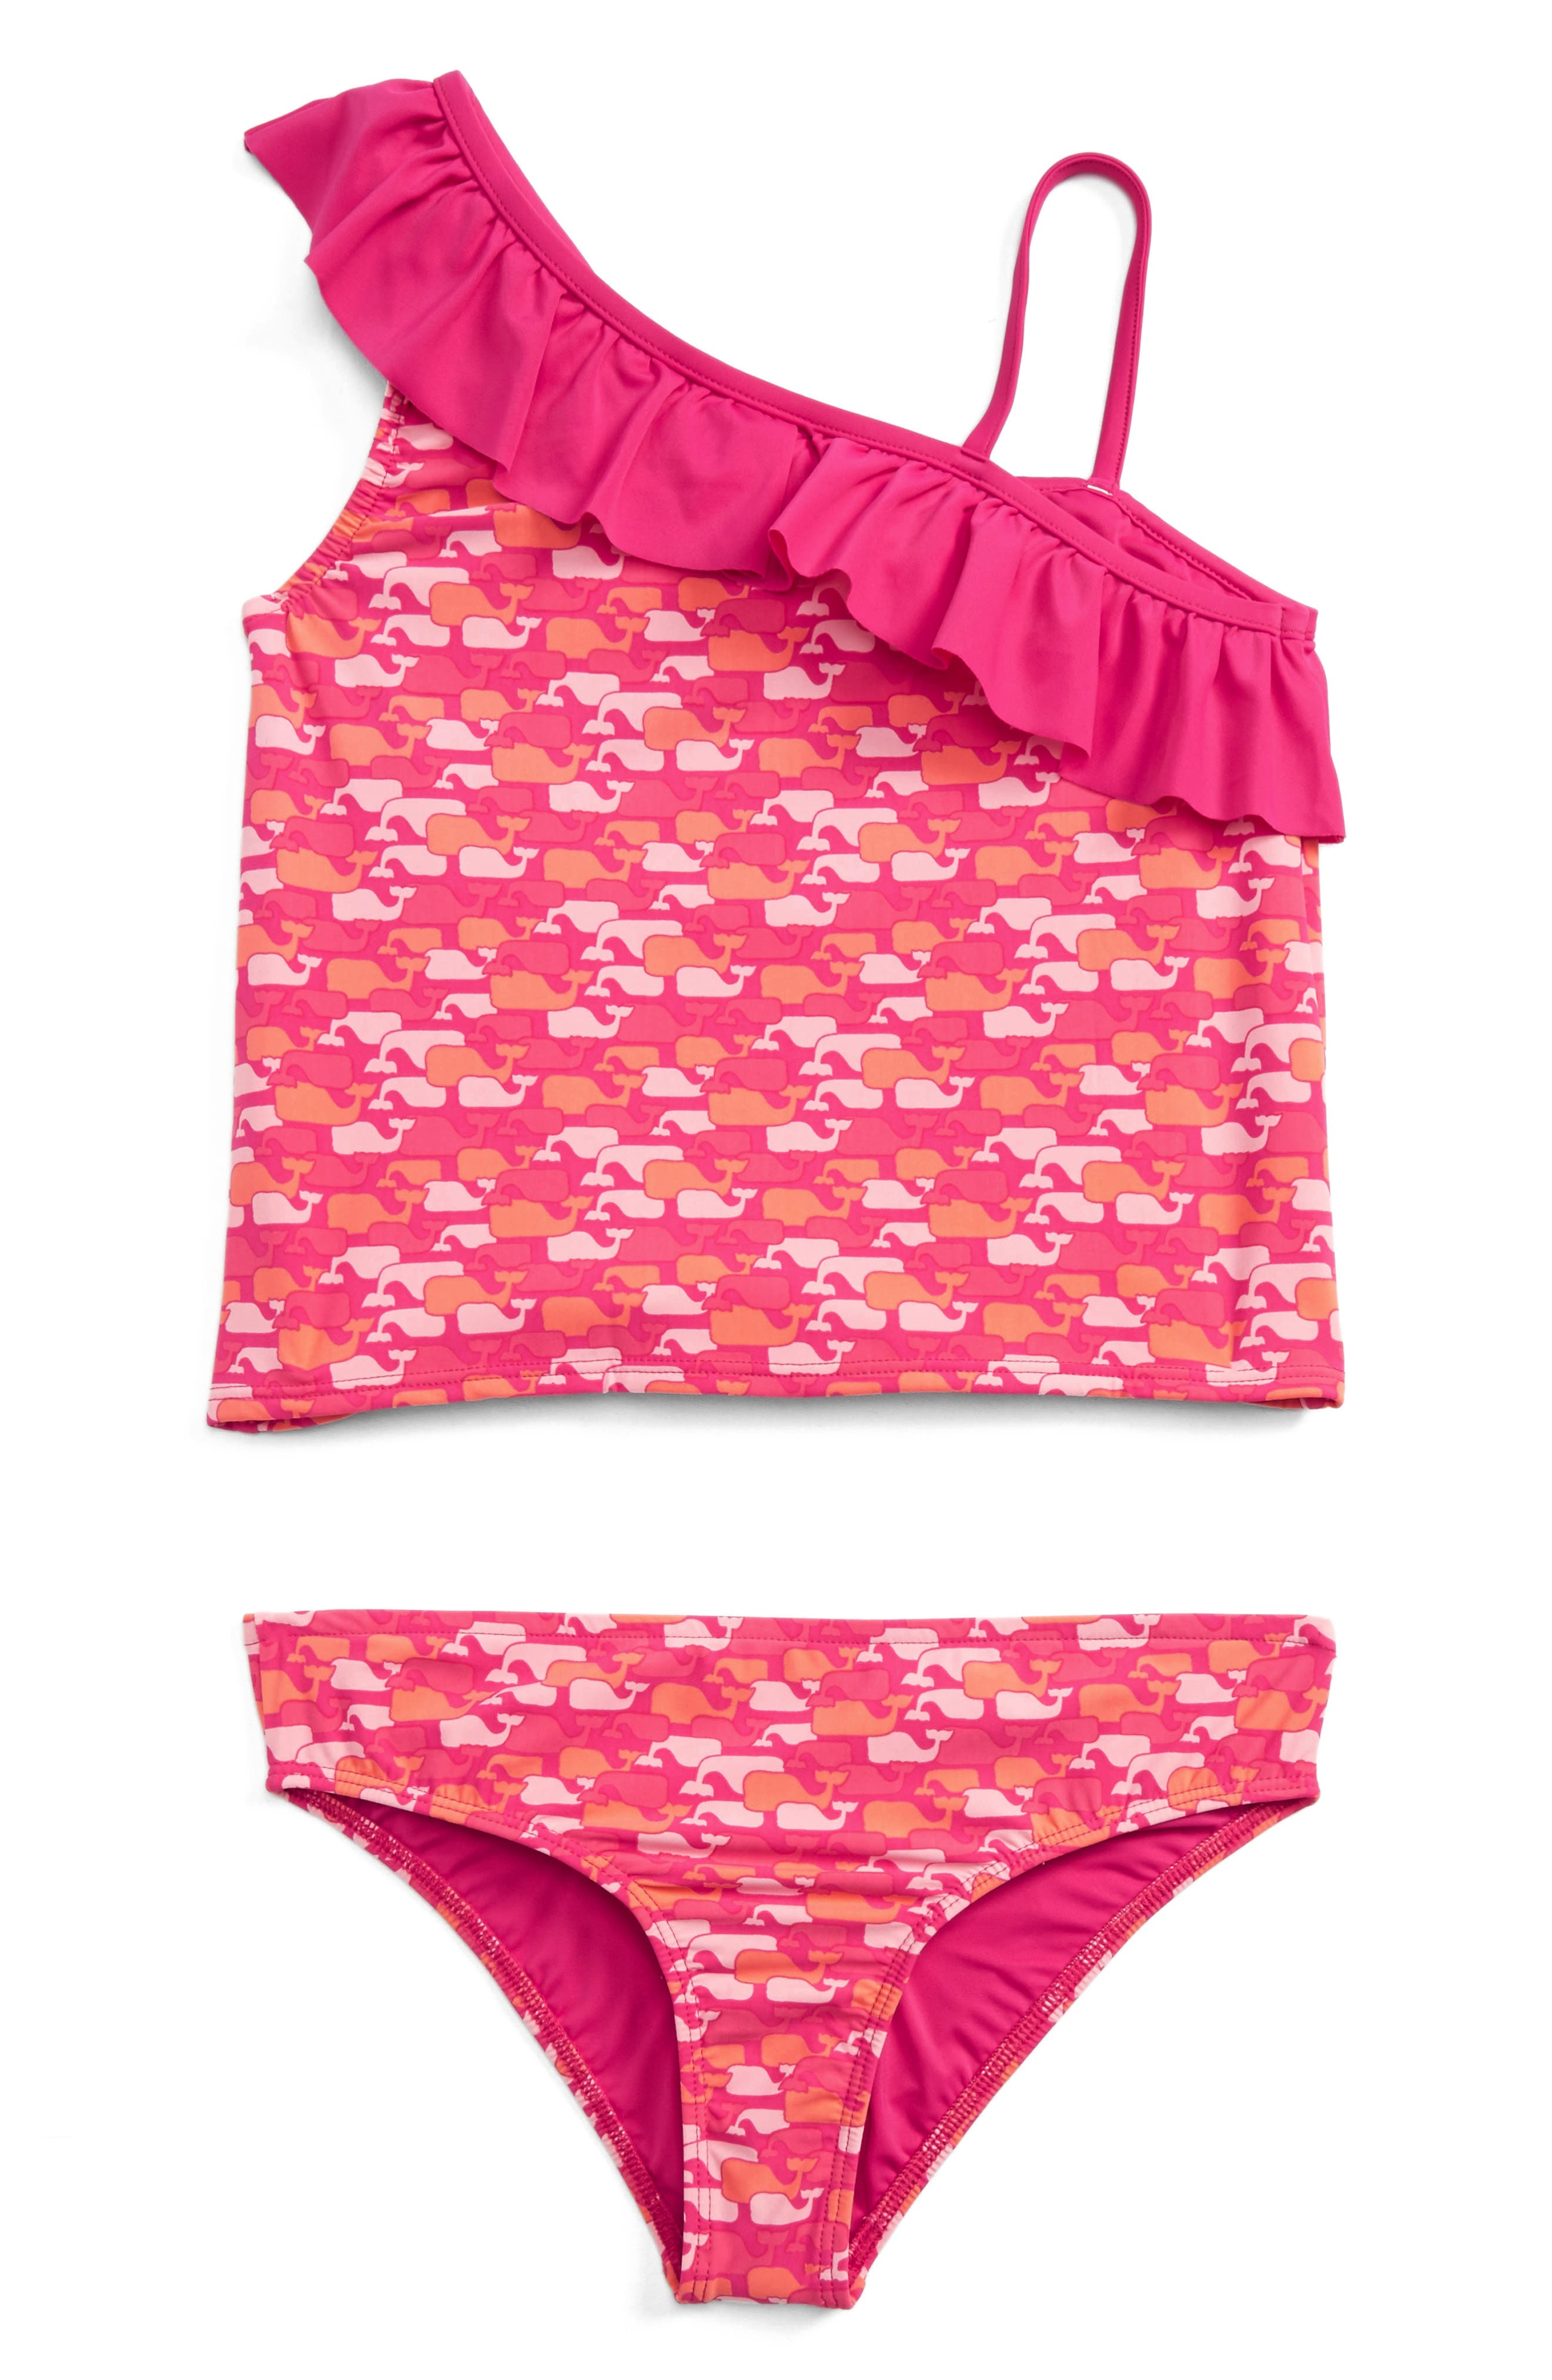 Main Image - vineyard vines Whale Outline Two-Piece Tankini Swimsuit (Toddler Girls, Little Girls & Big Girls)